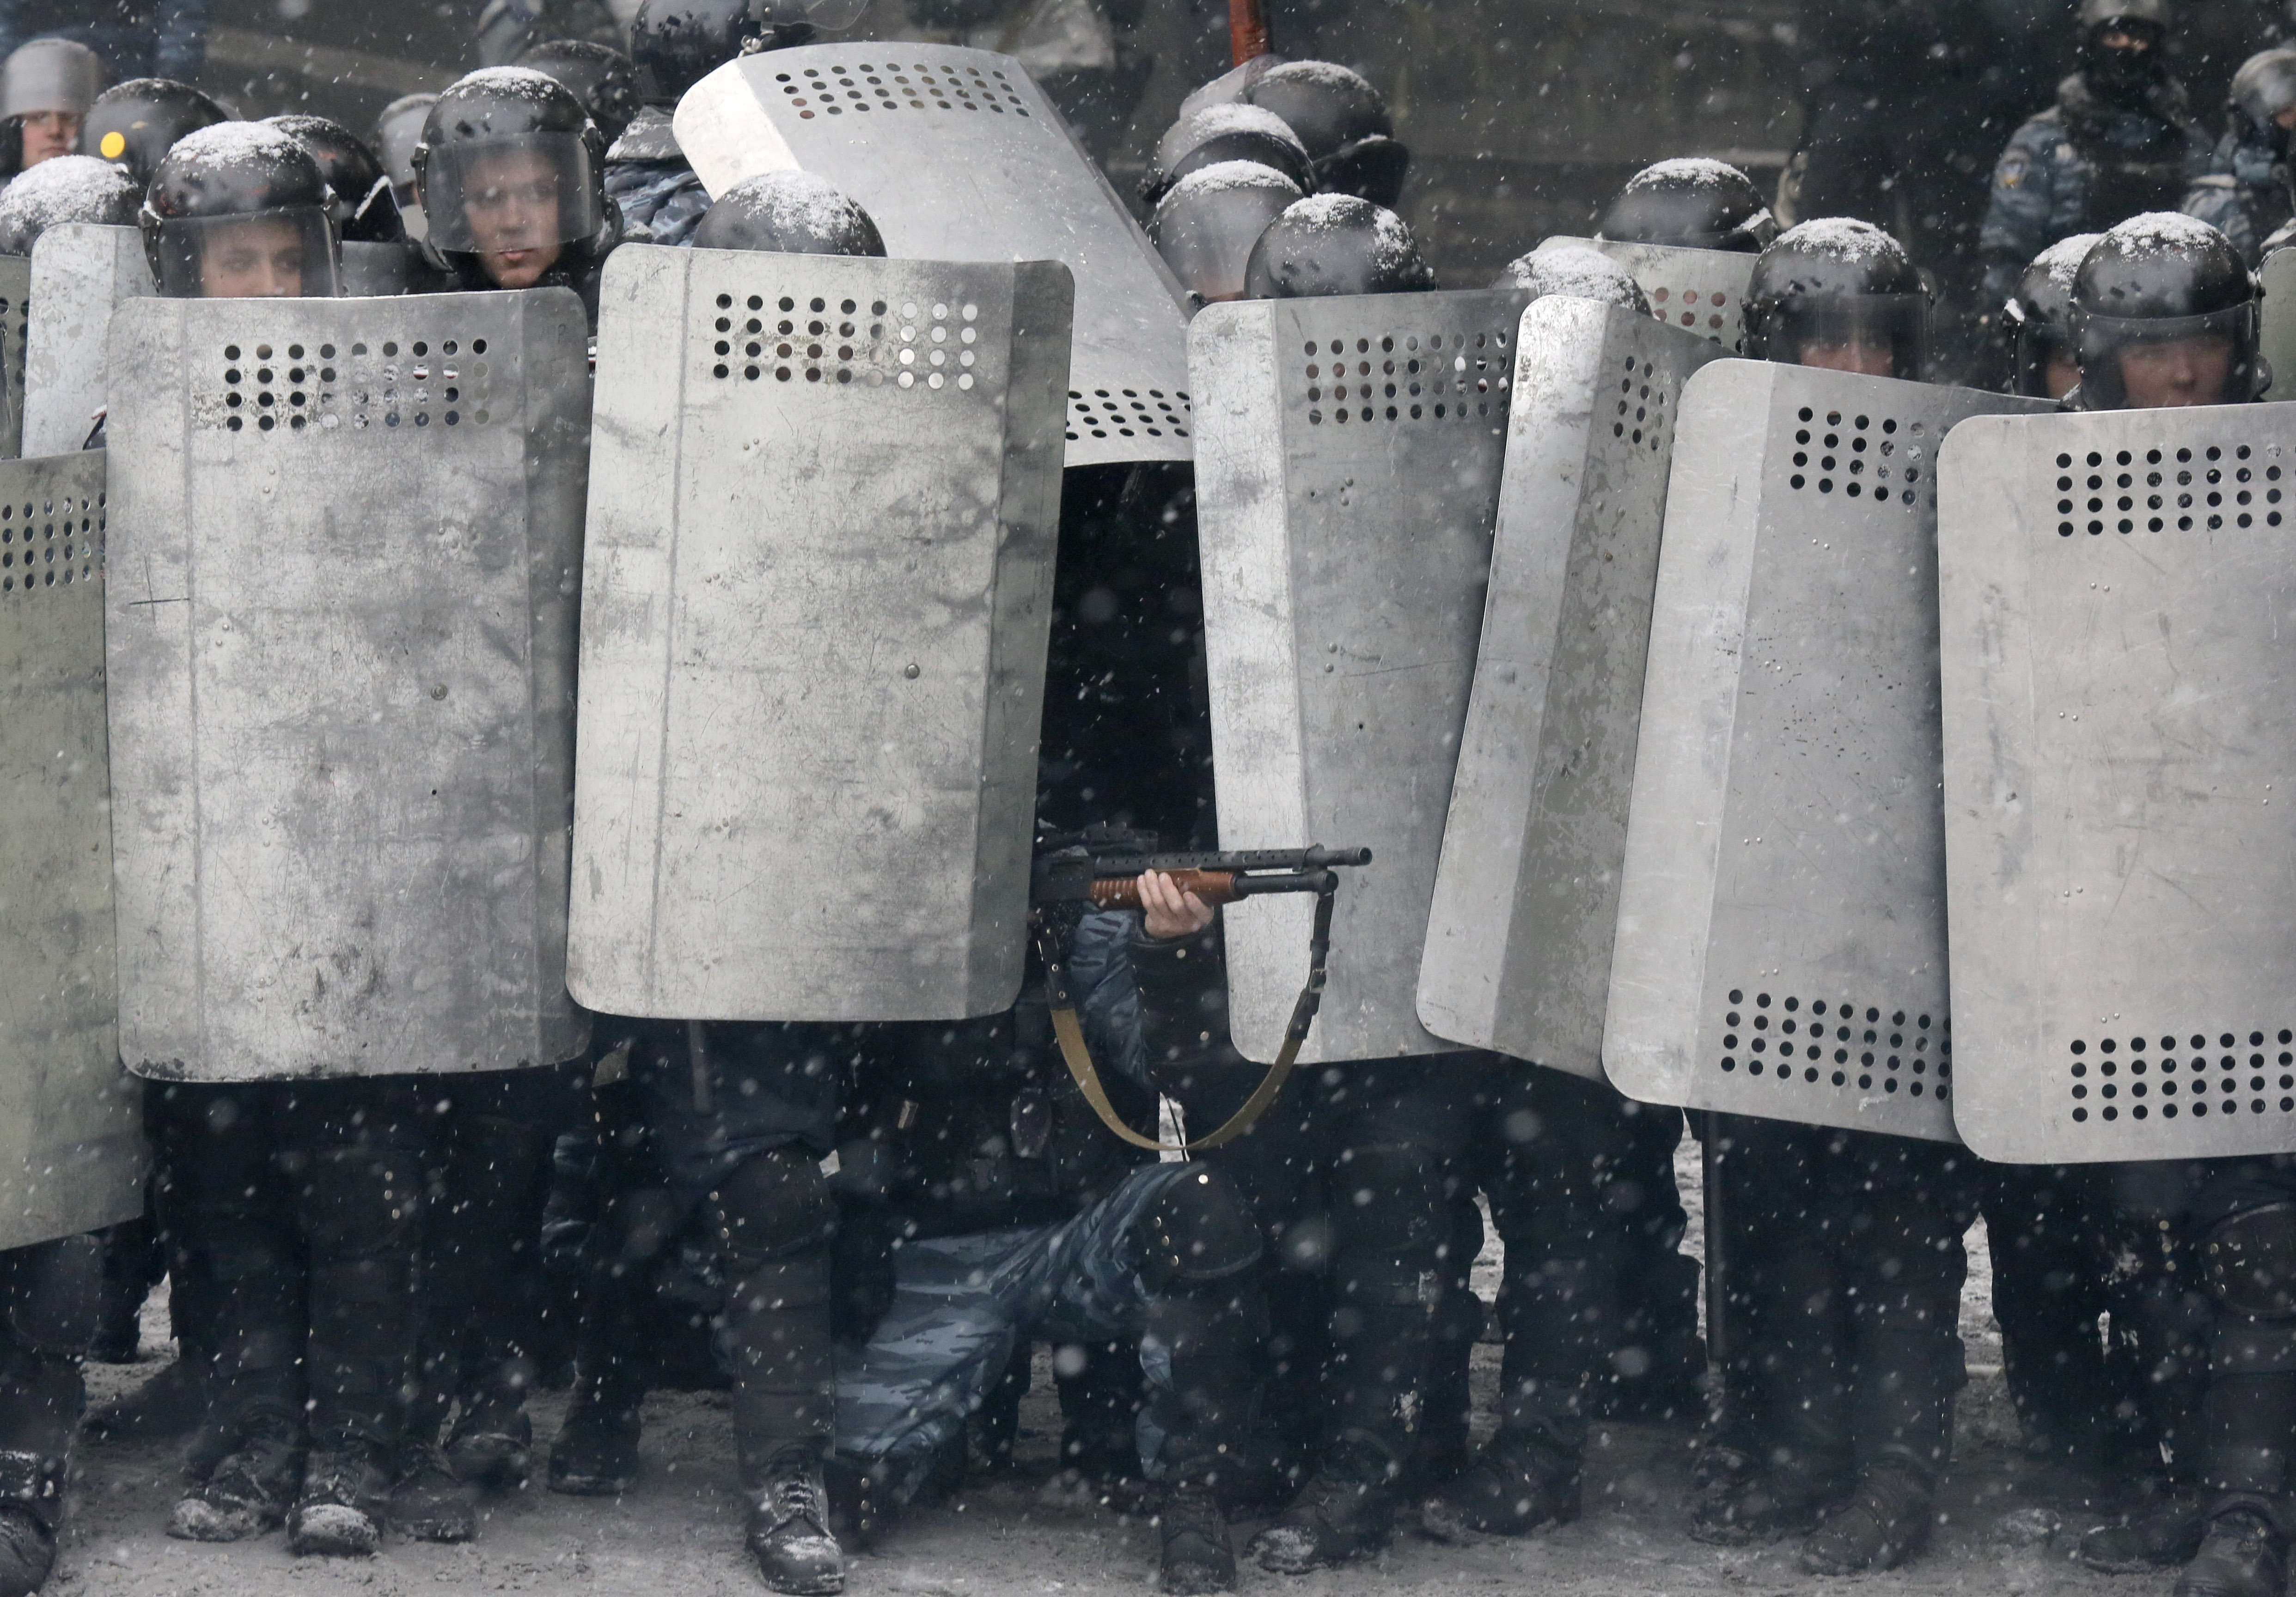 A police officer aims his shotgun during clashes with protesters in central Kiev, Jan. 22, 2014.